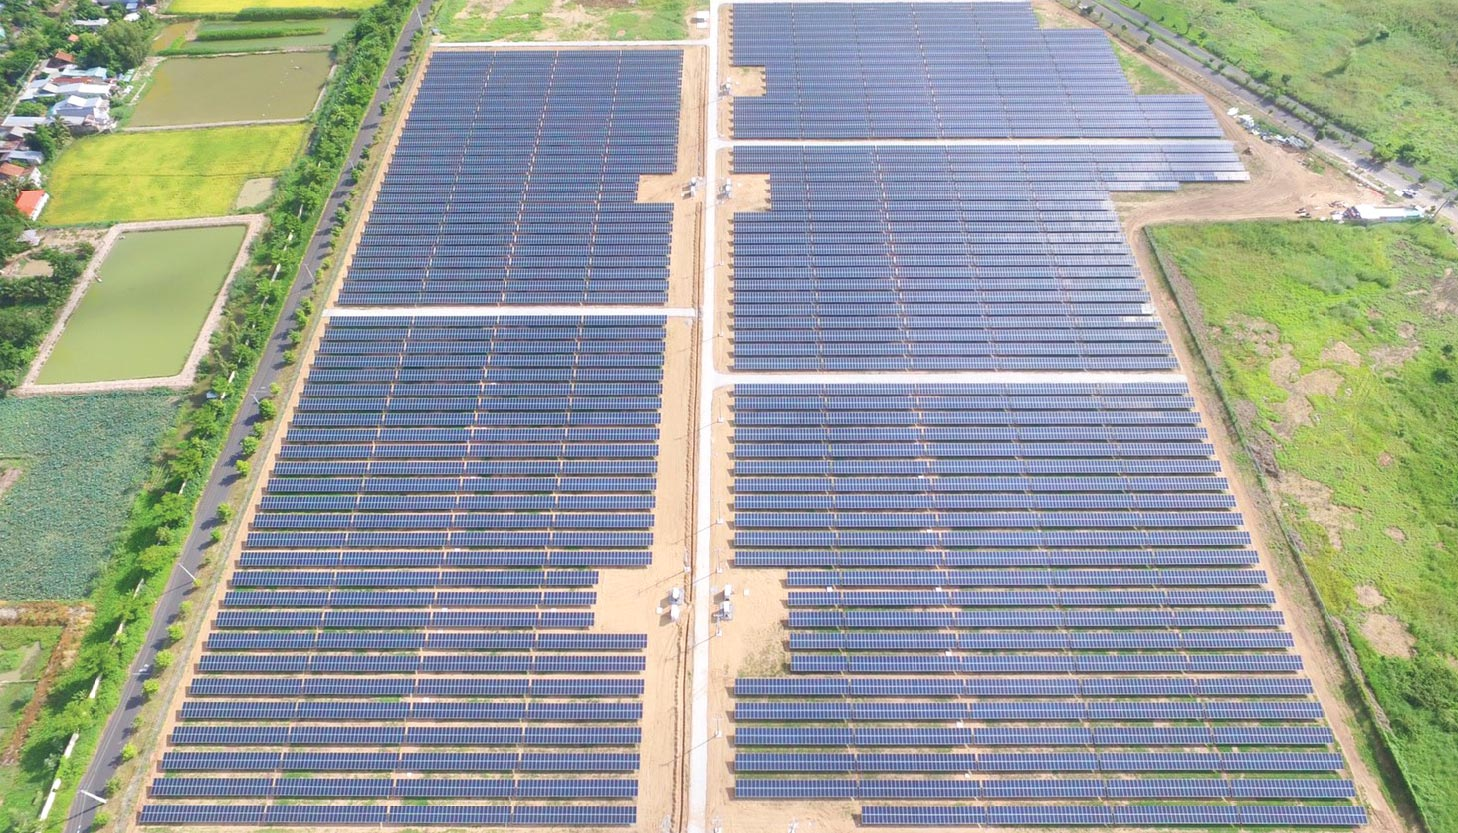 Binh Hoa Industrial Park in An Giang Province of Vietnam (10 MW)